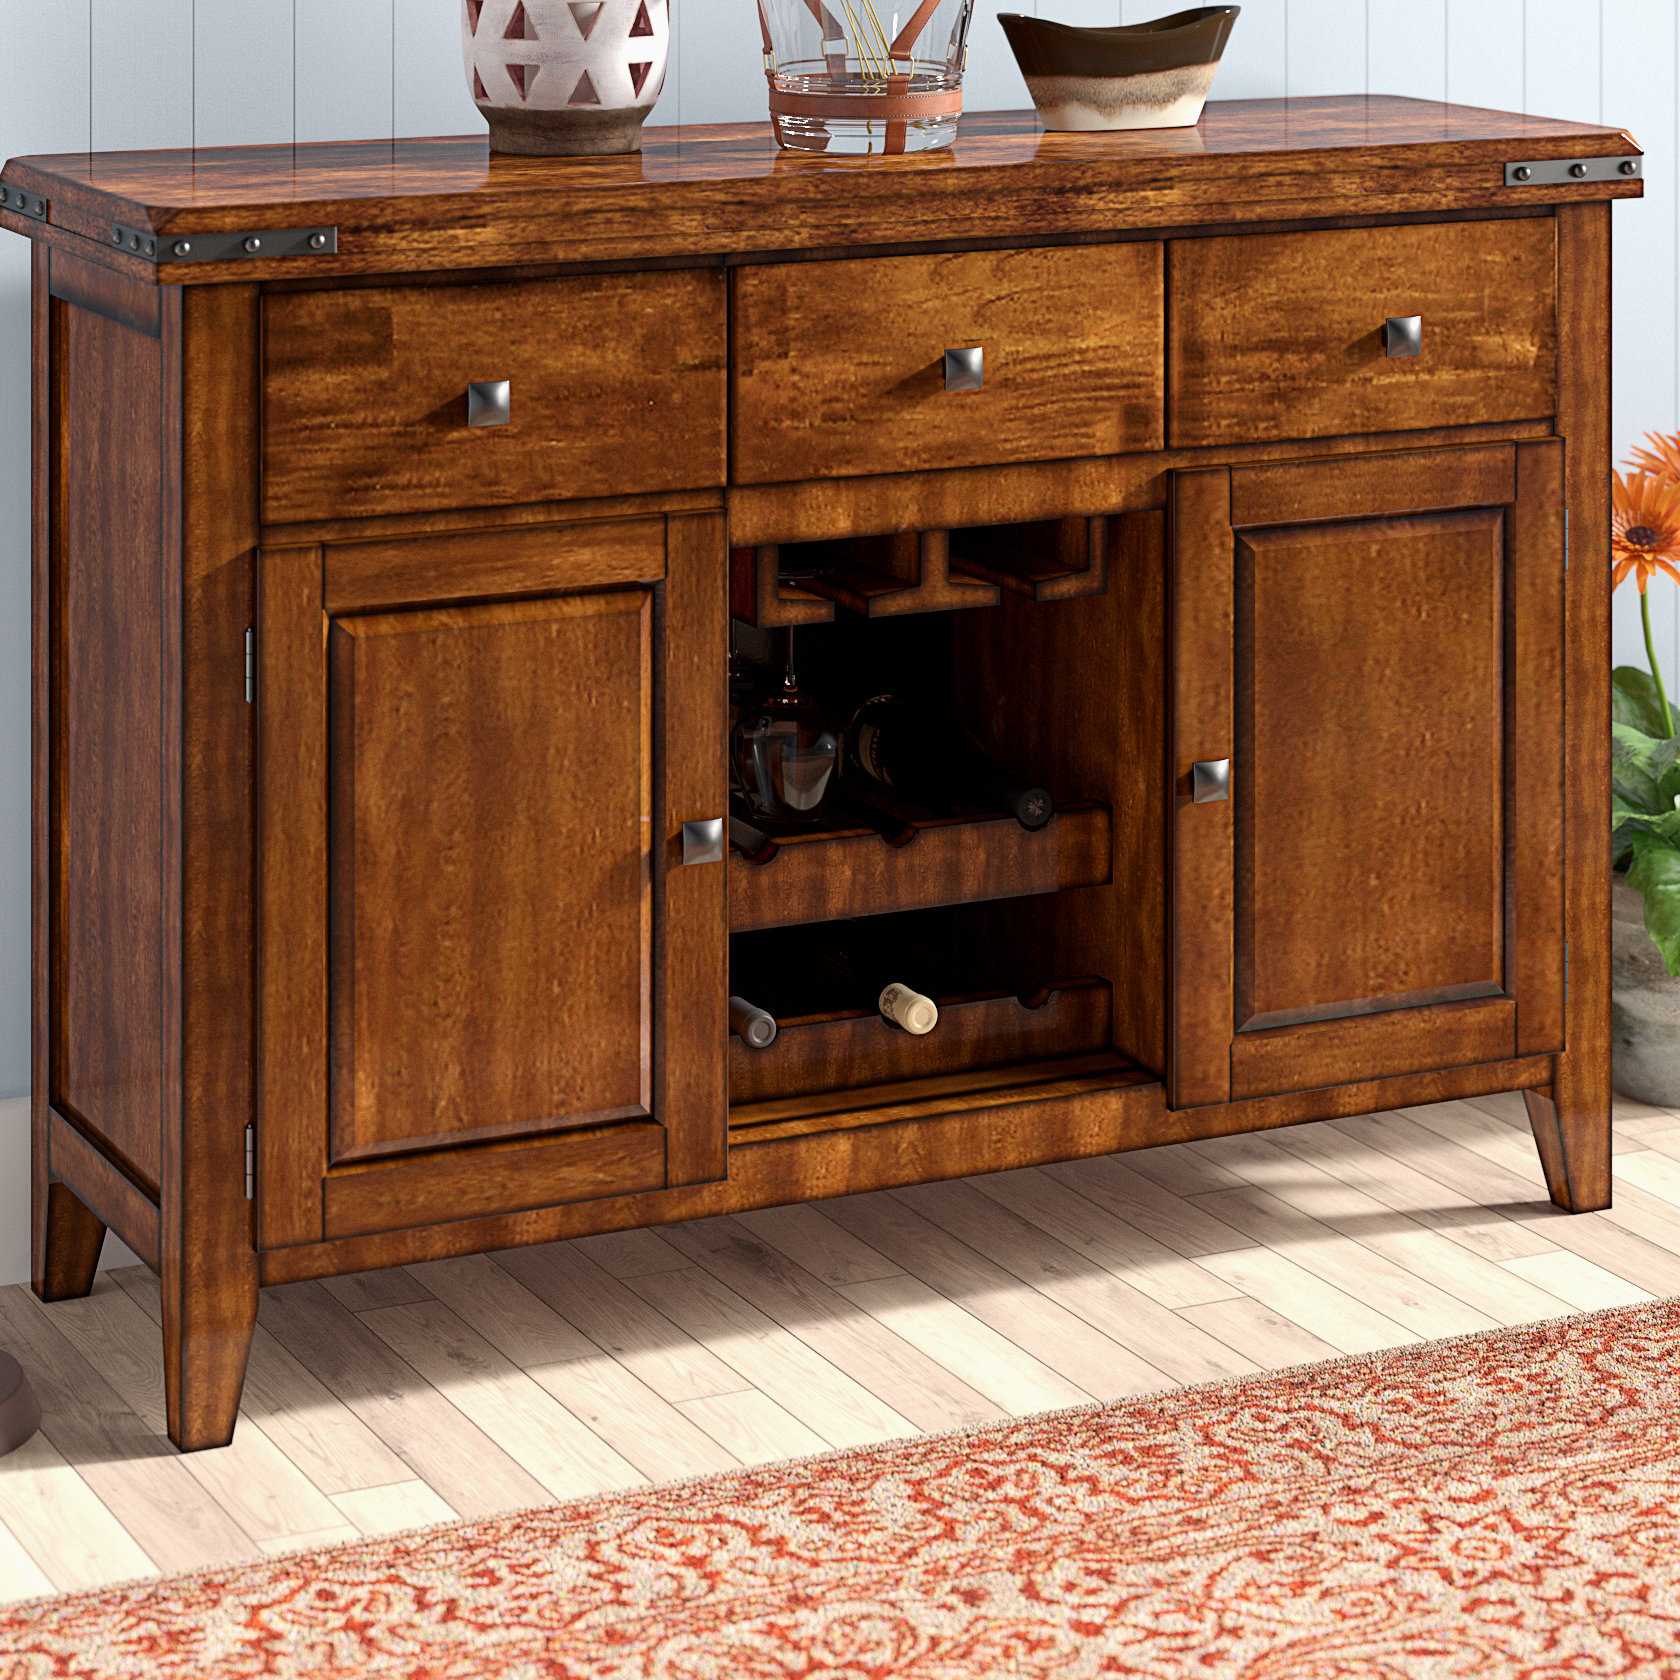 Current Medium Yellow Wood Sideboard / Credenza Sideboards & Buffets Pertaining To Tilman Sideboards (Gallery 19 of 20)